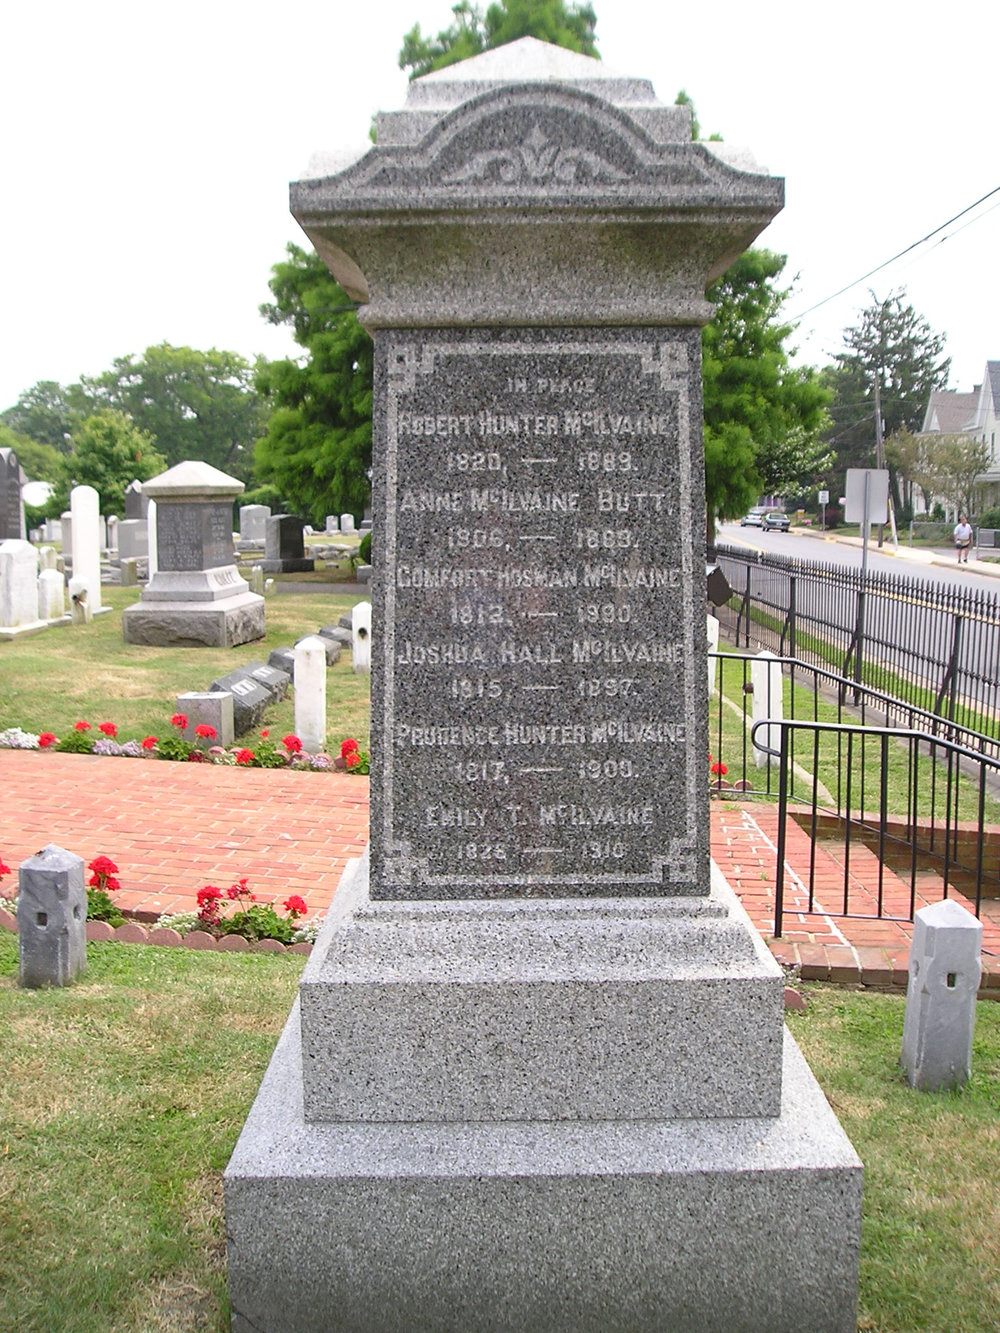 Joshua Hall McIlvaine is buried at Lewes Presbyterian Church Cemetery, Lewes, Delaware.